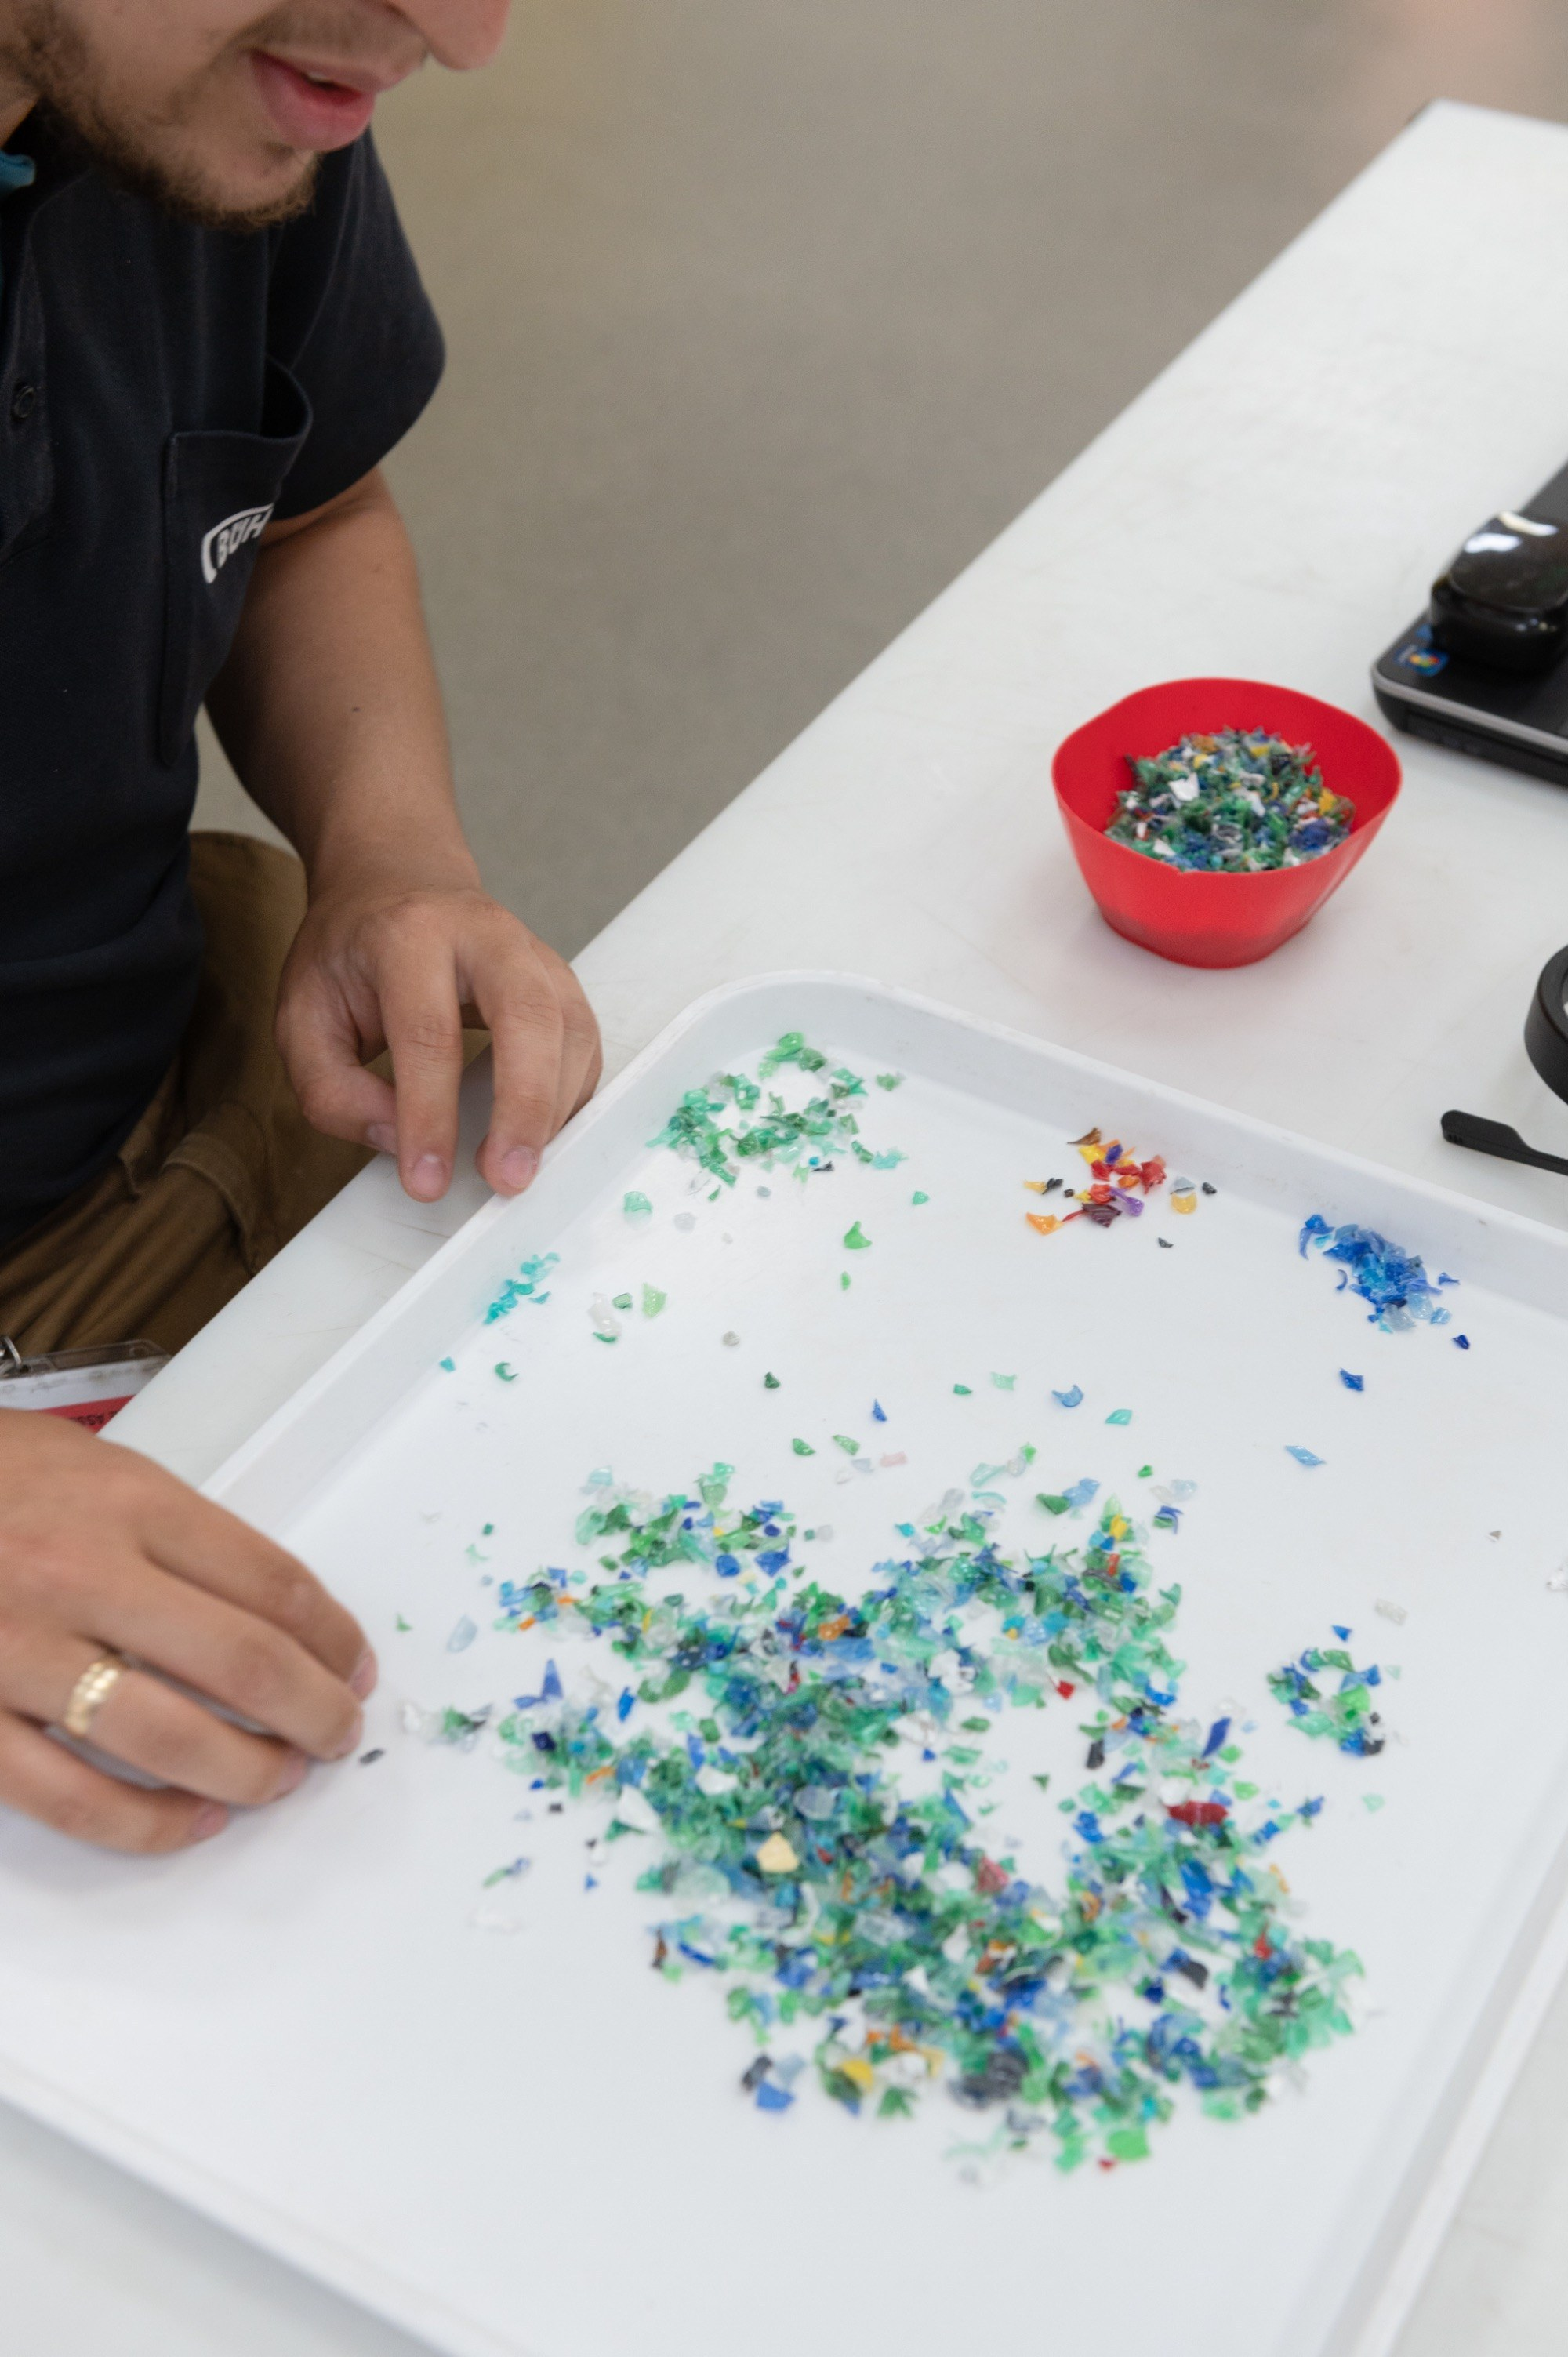 Buhler in the Royal Docks, man sorting tiny pieces of plastic at a desk